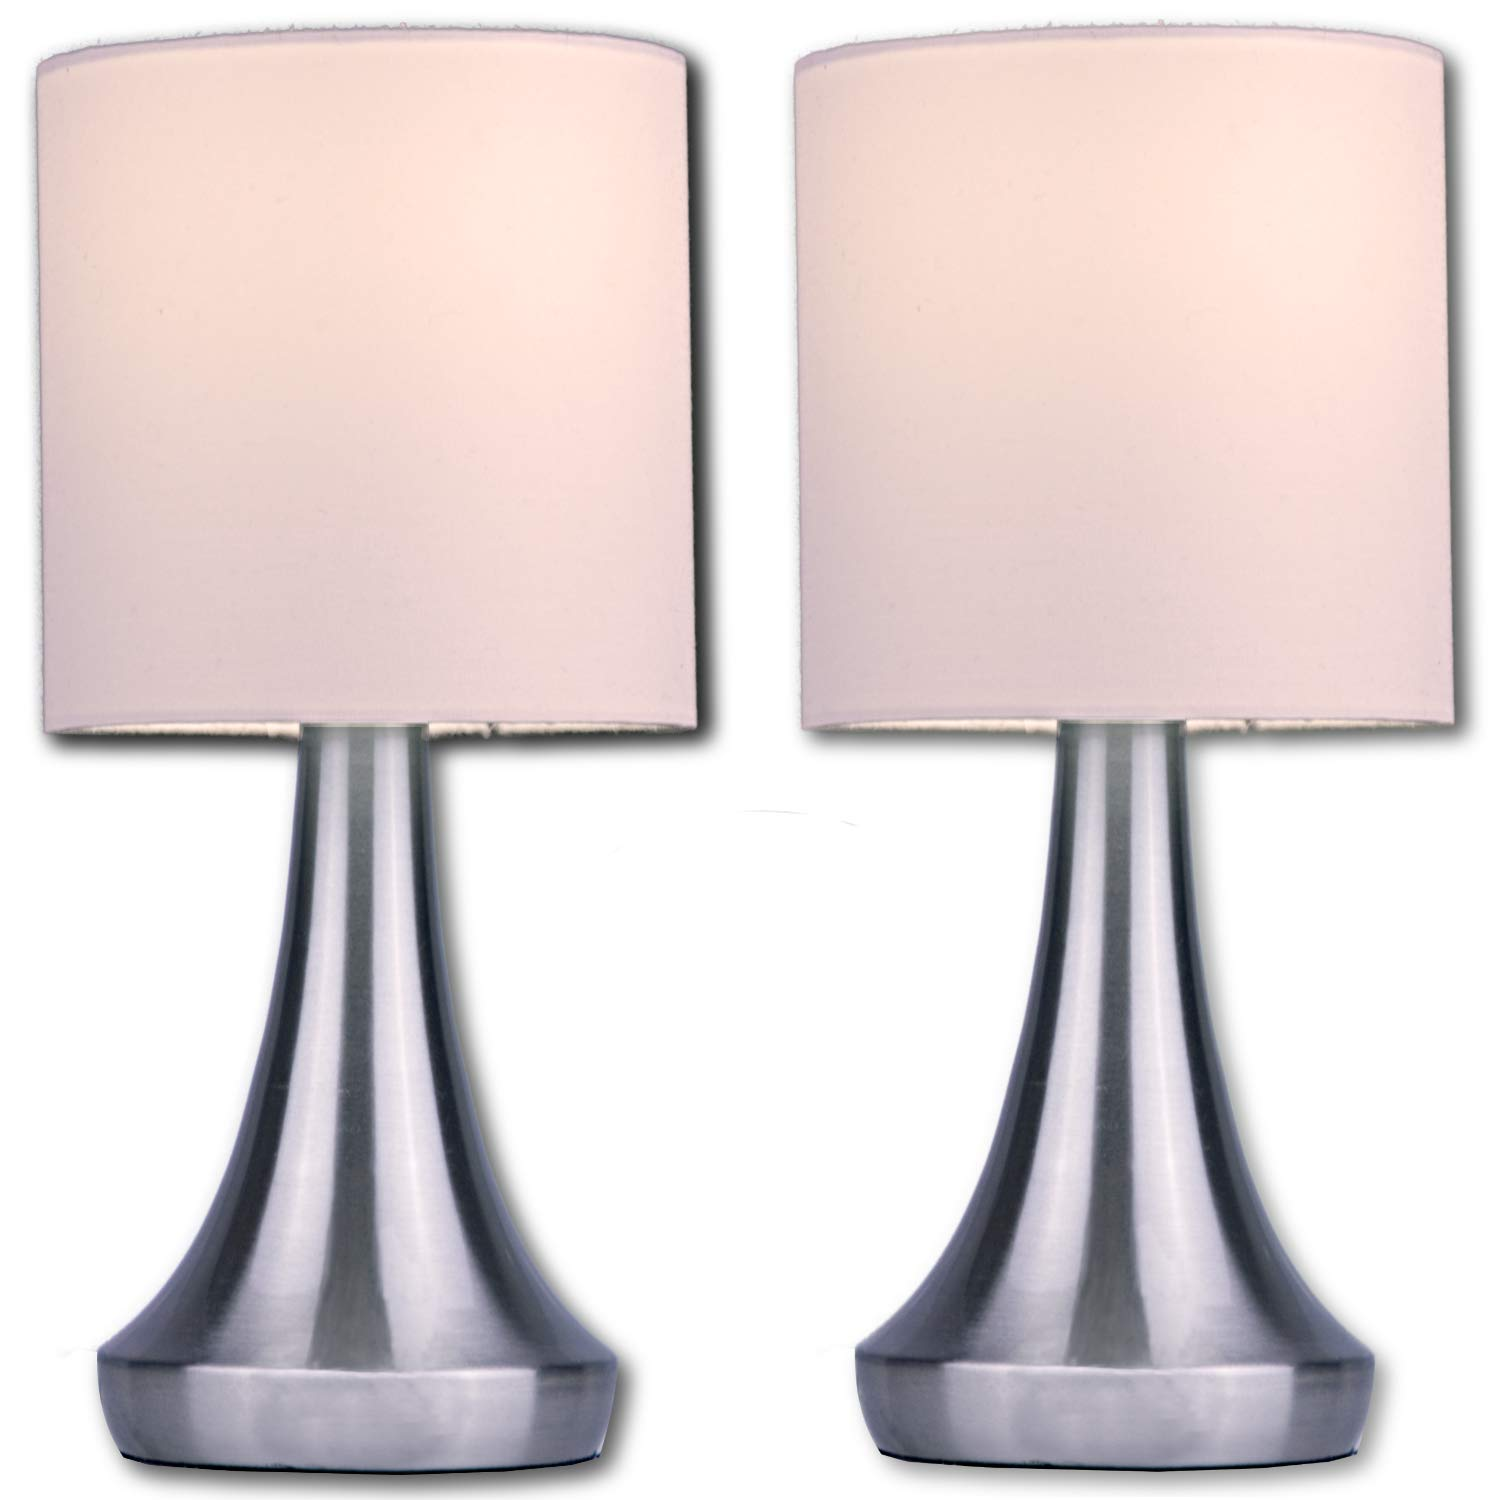 Light Accents Touch Table Lamp Set Stands 13 Tall Accent Light Touch Lamp Set With Fabric Shades And 3 Stage Touch Dimmer Brushed Nickel Finish